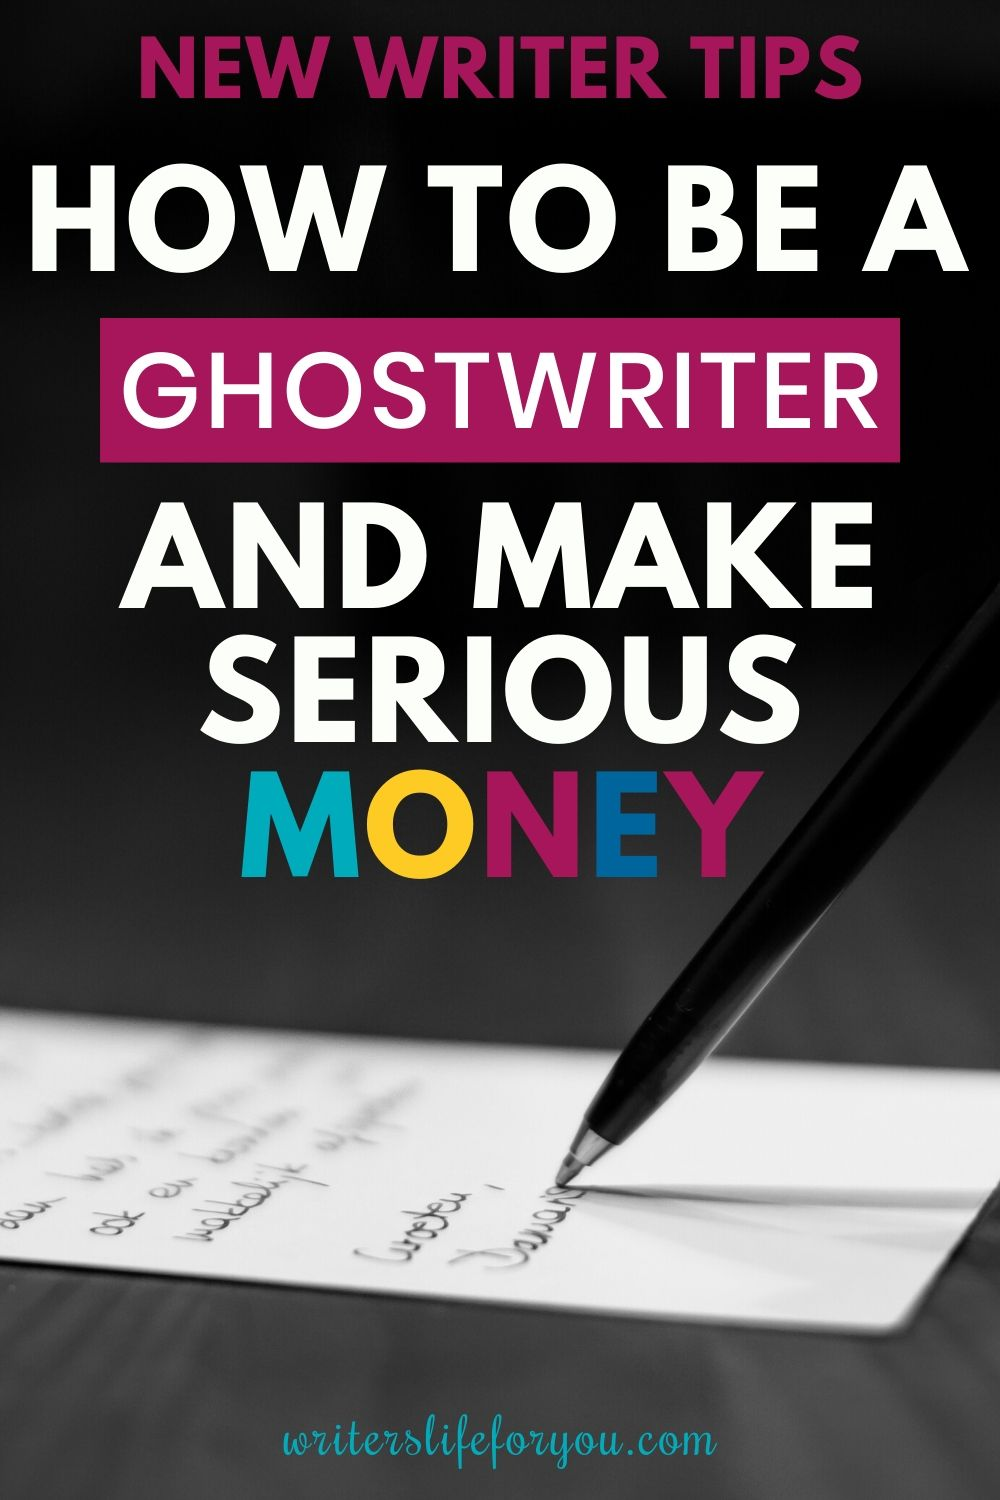 How to Be a Ghostwriter and Make Serious Money (Even if You Don\'t Know What You\'re Doing